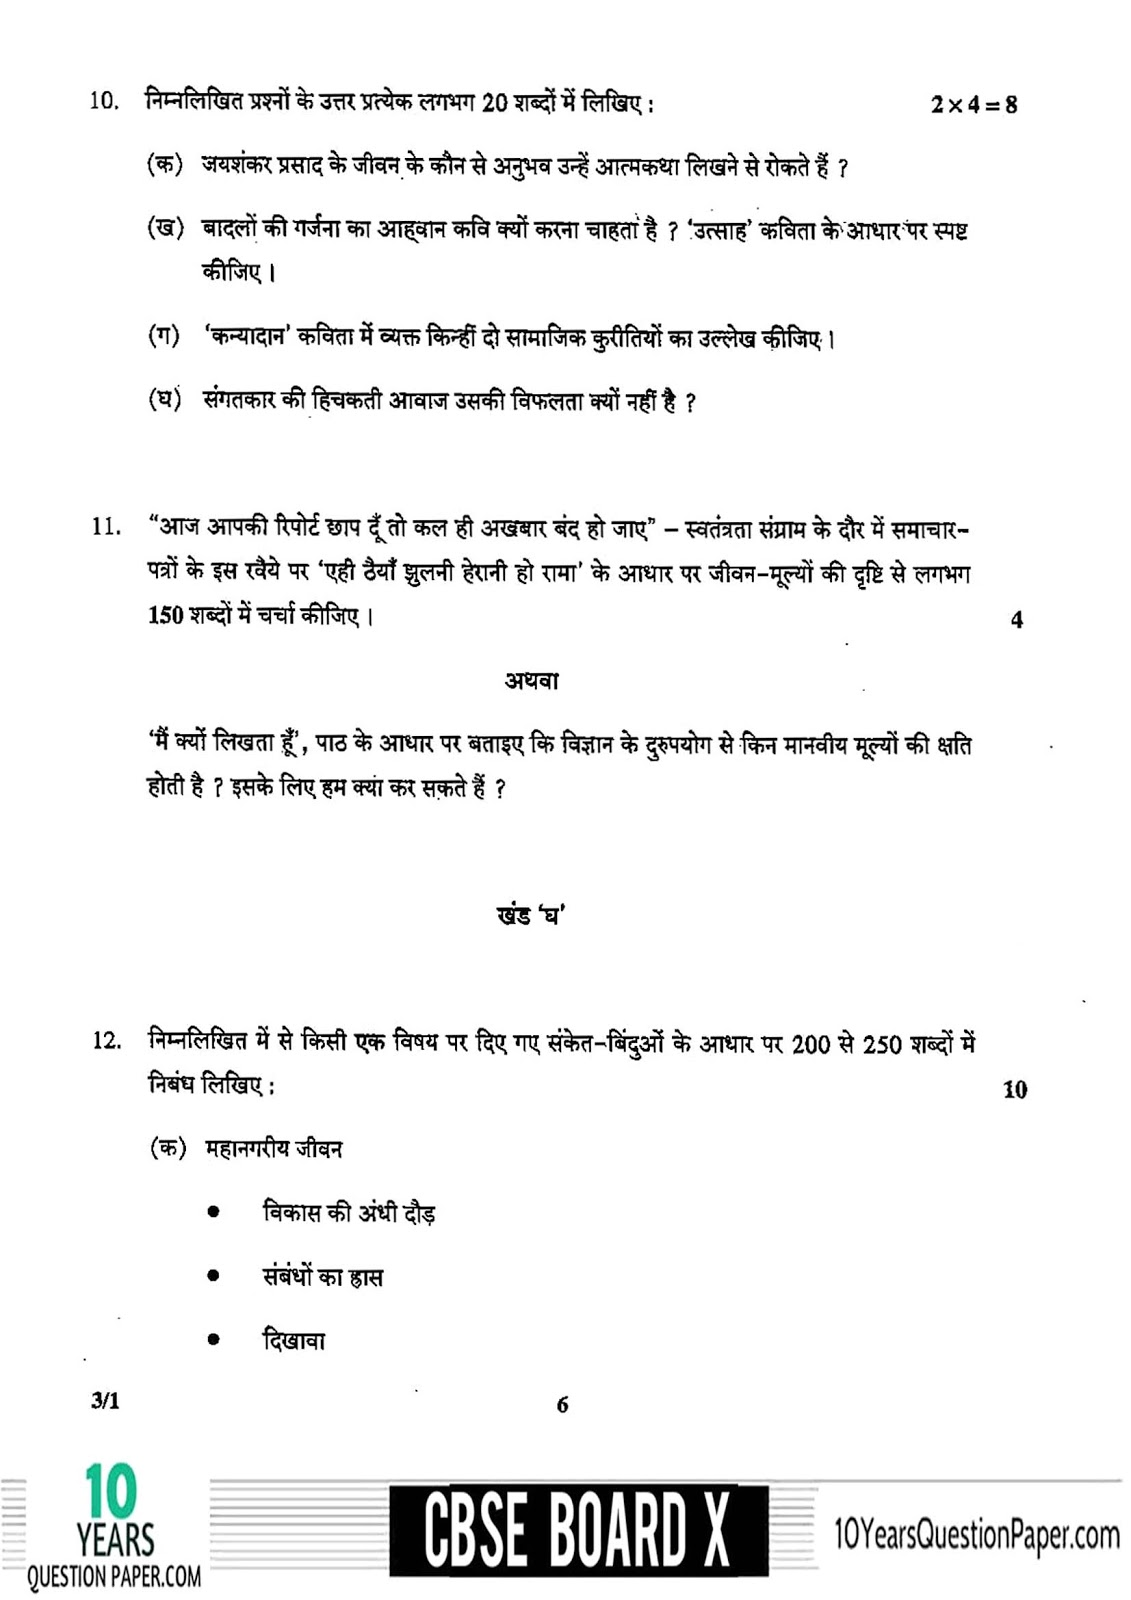 CBSE Board 2018 Hindi Course A Question paper Class 10 Page-06